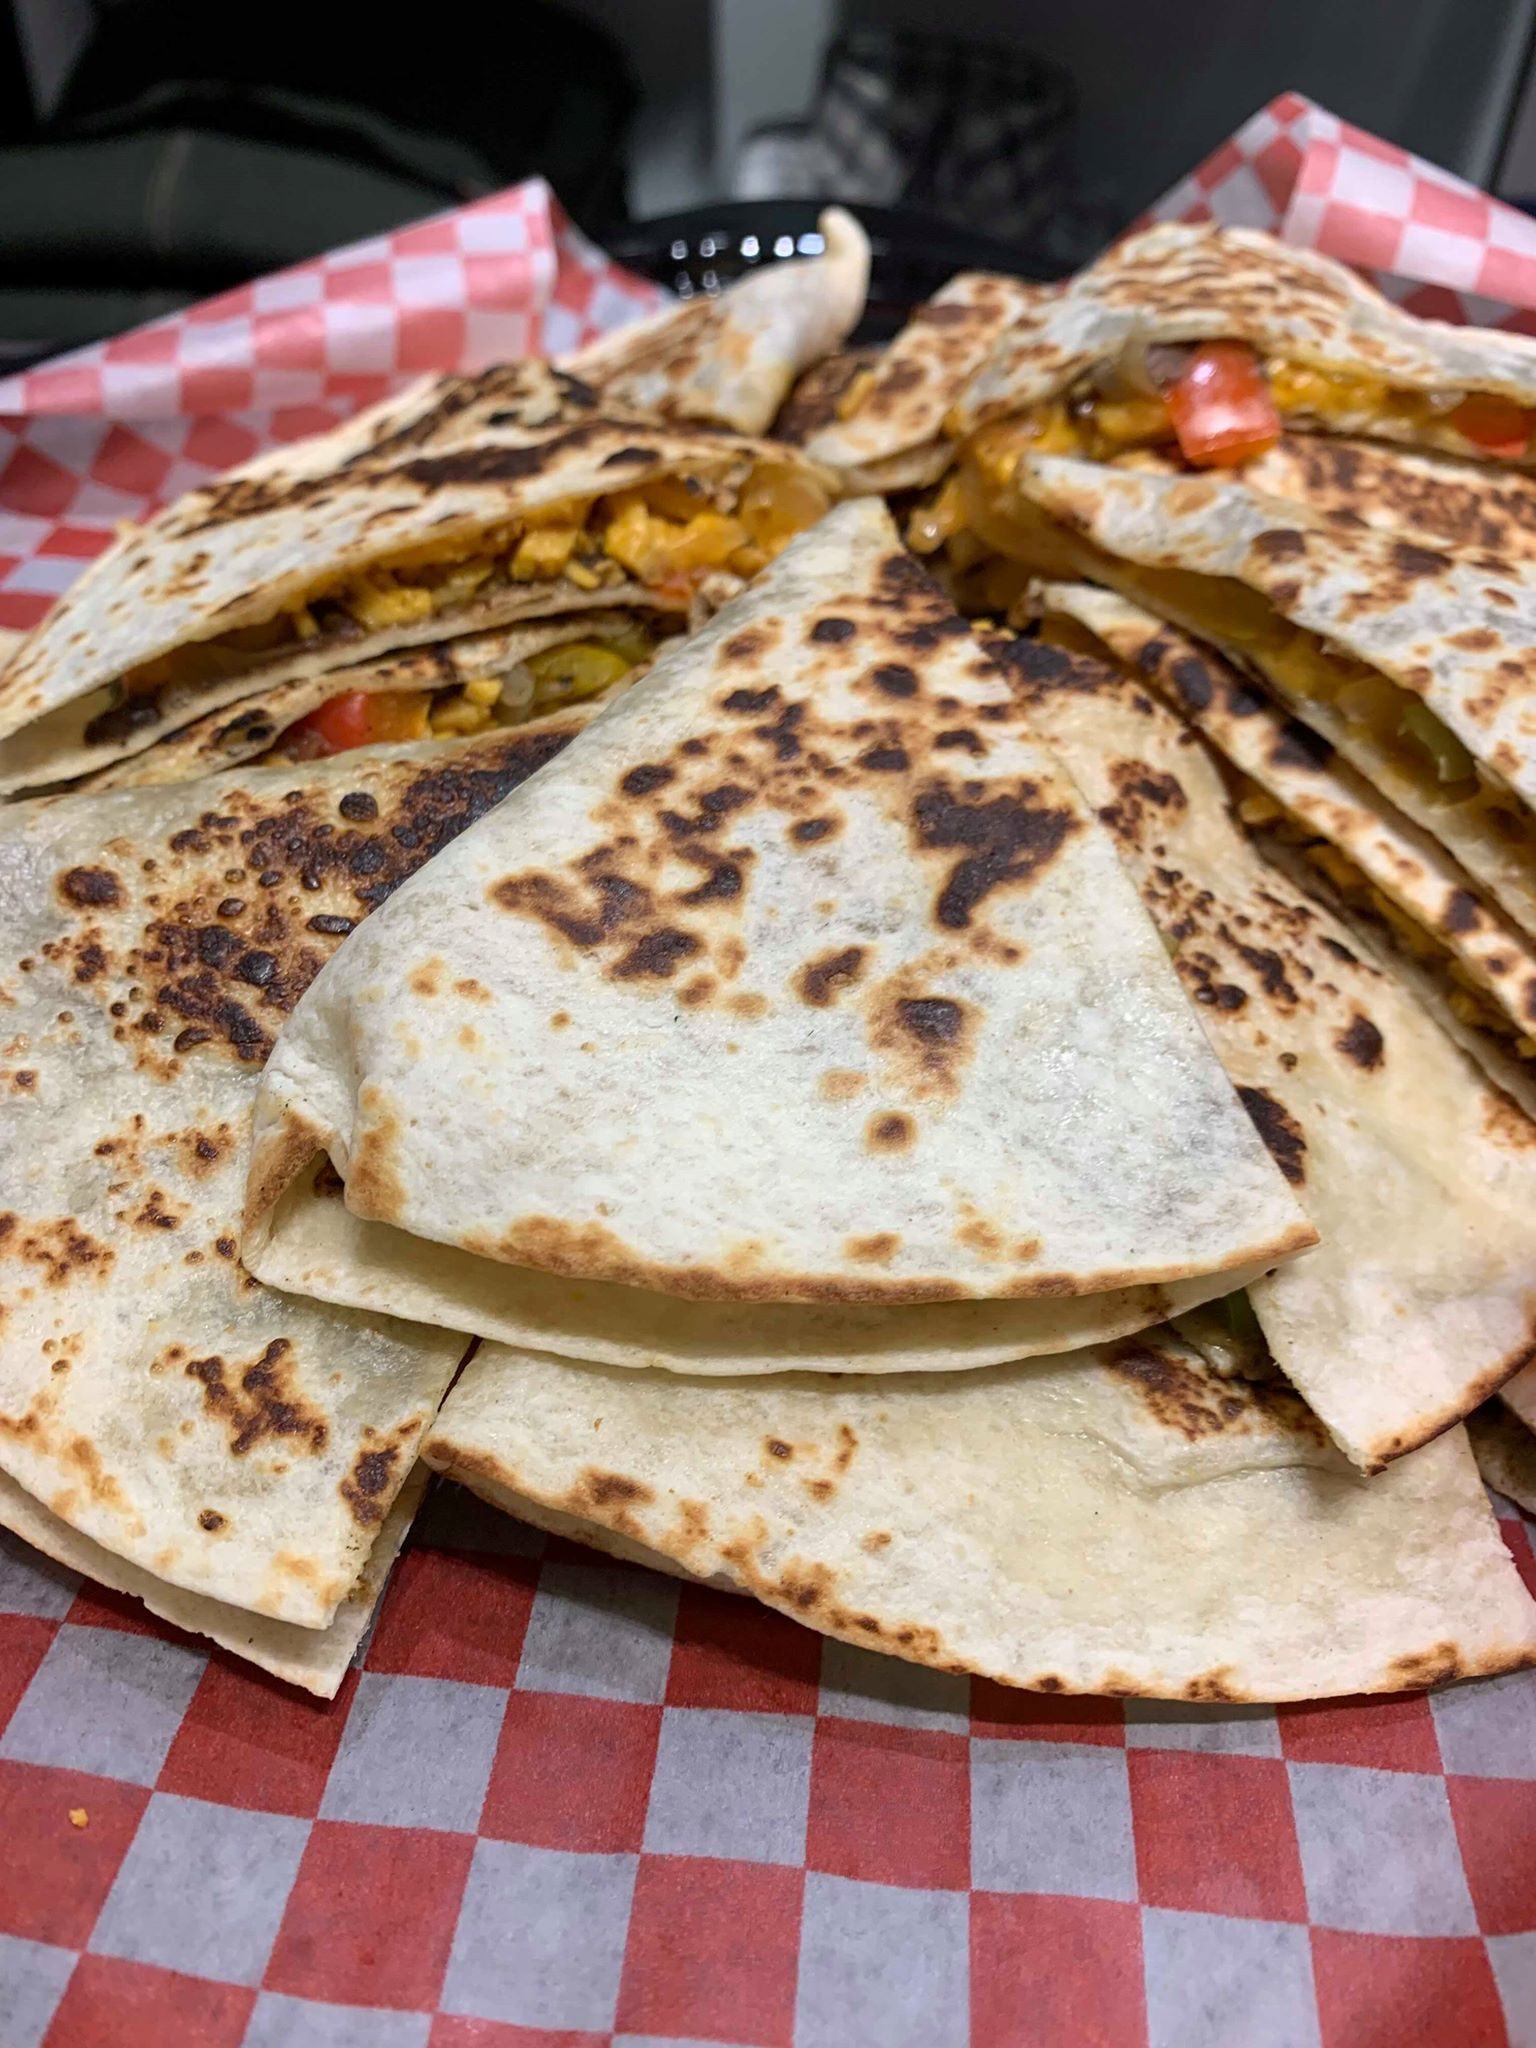 ZAZA Catered Quesadilla